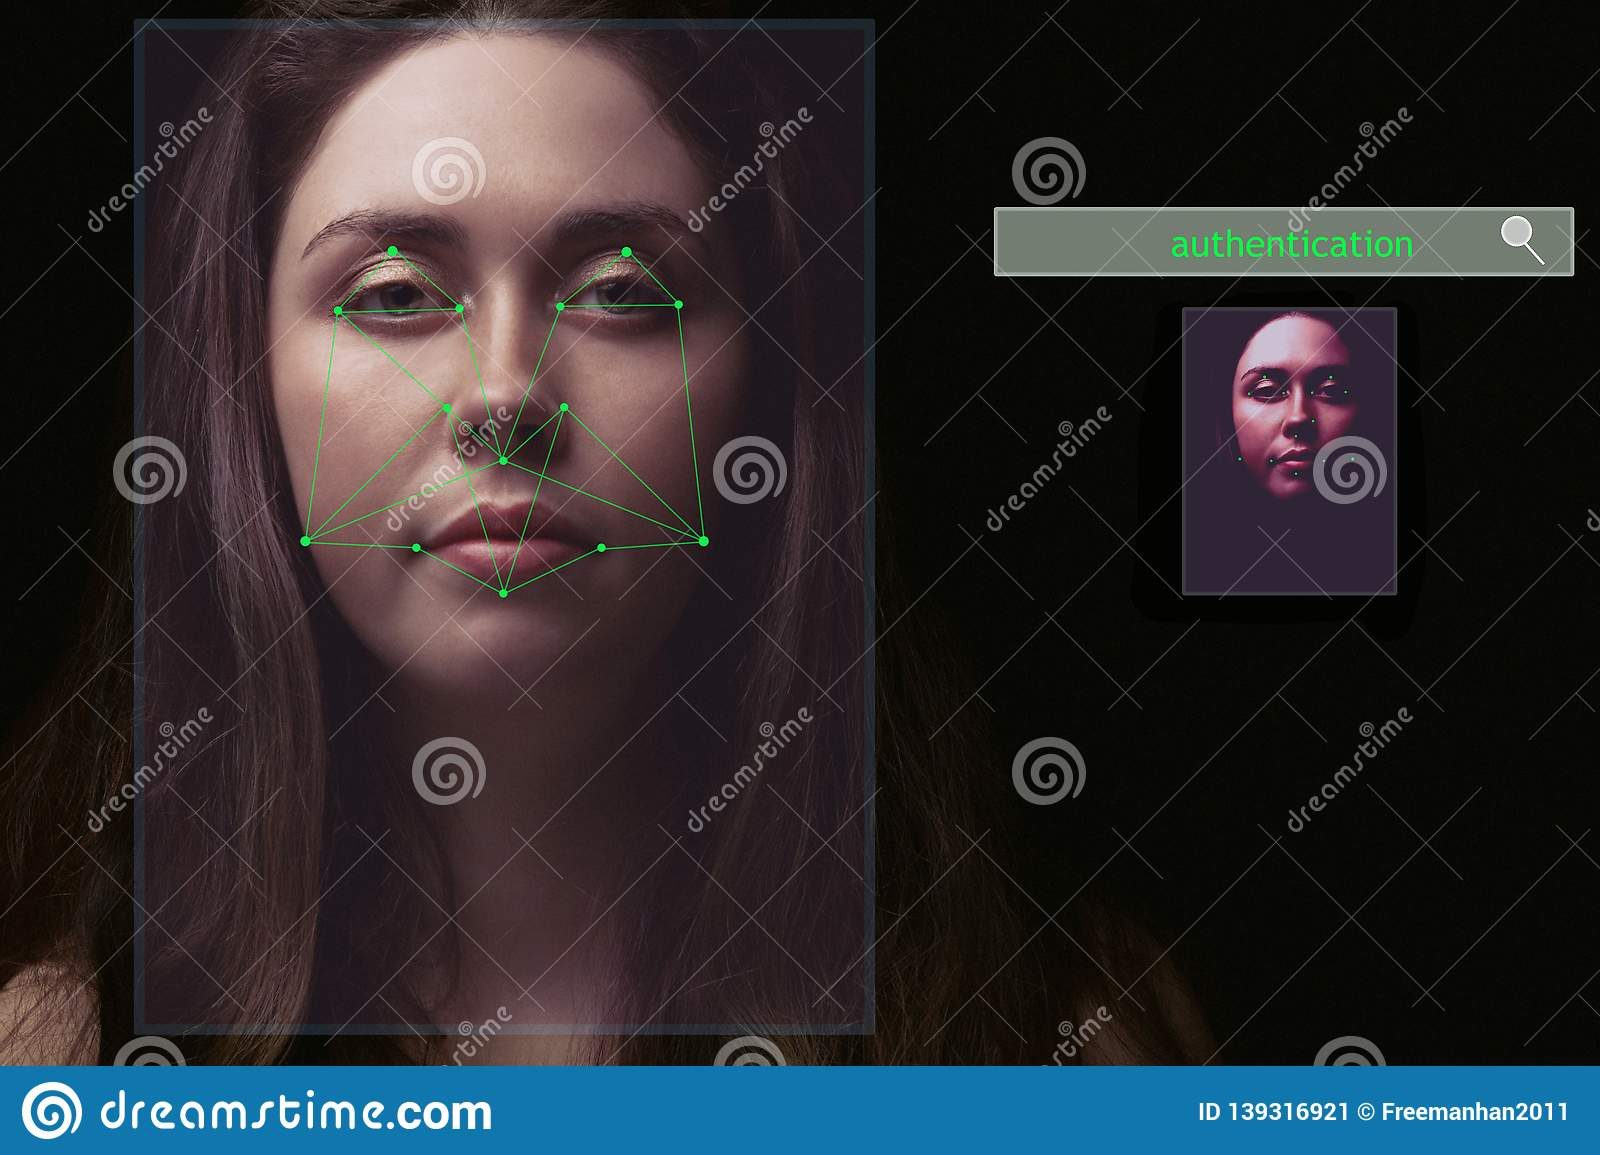 Artificial intelligence identifies the face of a match in the database